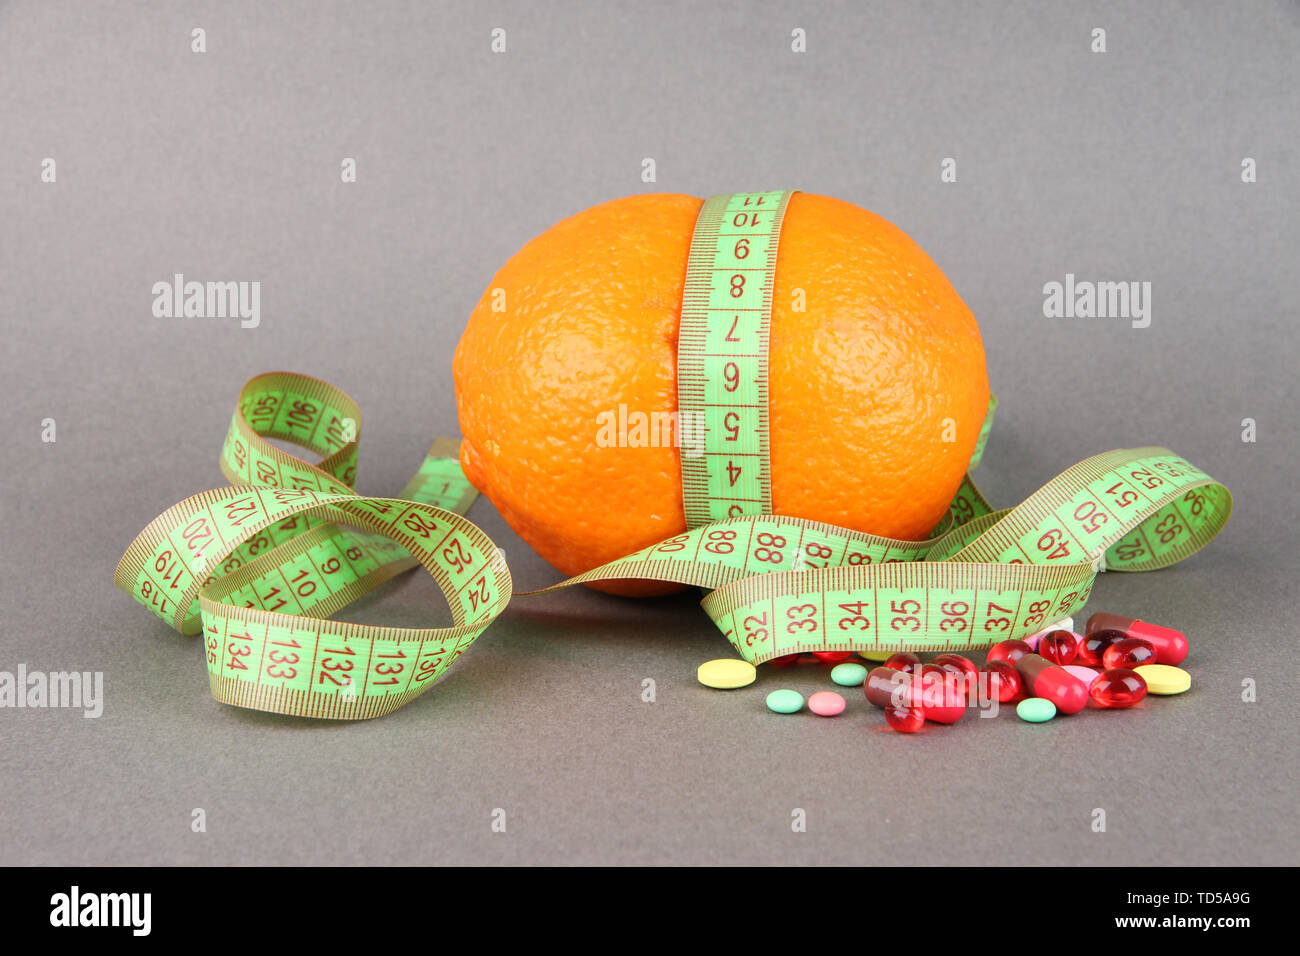 Orange with measuring tape and multicolor pills, on color background - Stock Image